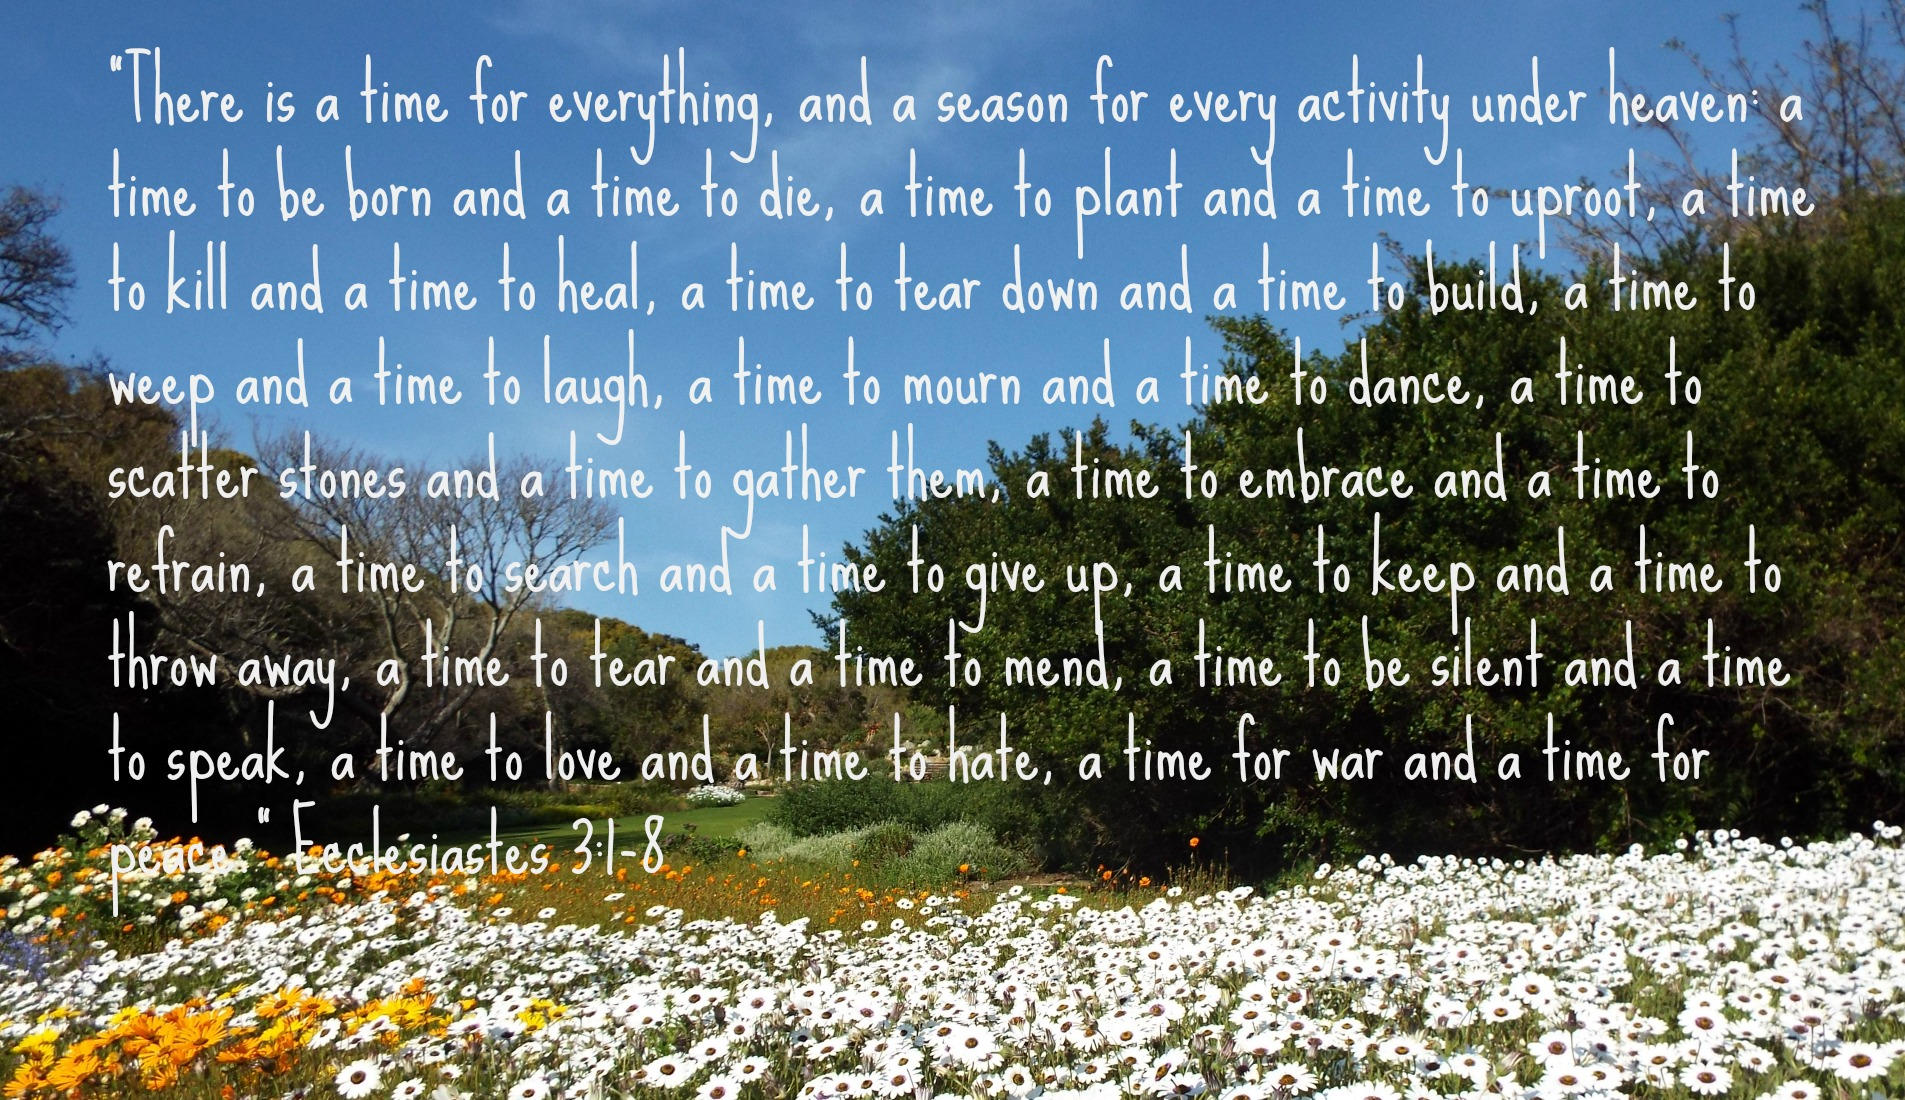 A time for everything - Ecclesiastes 3: 1-8